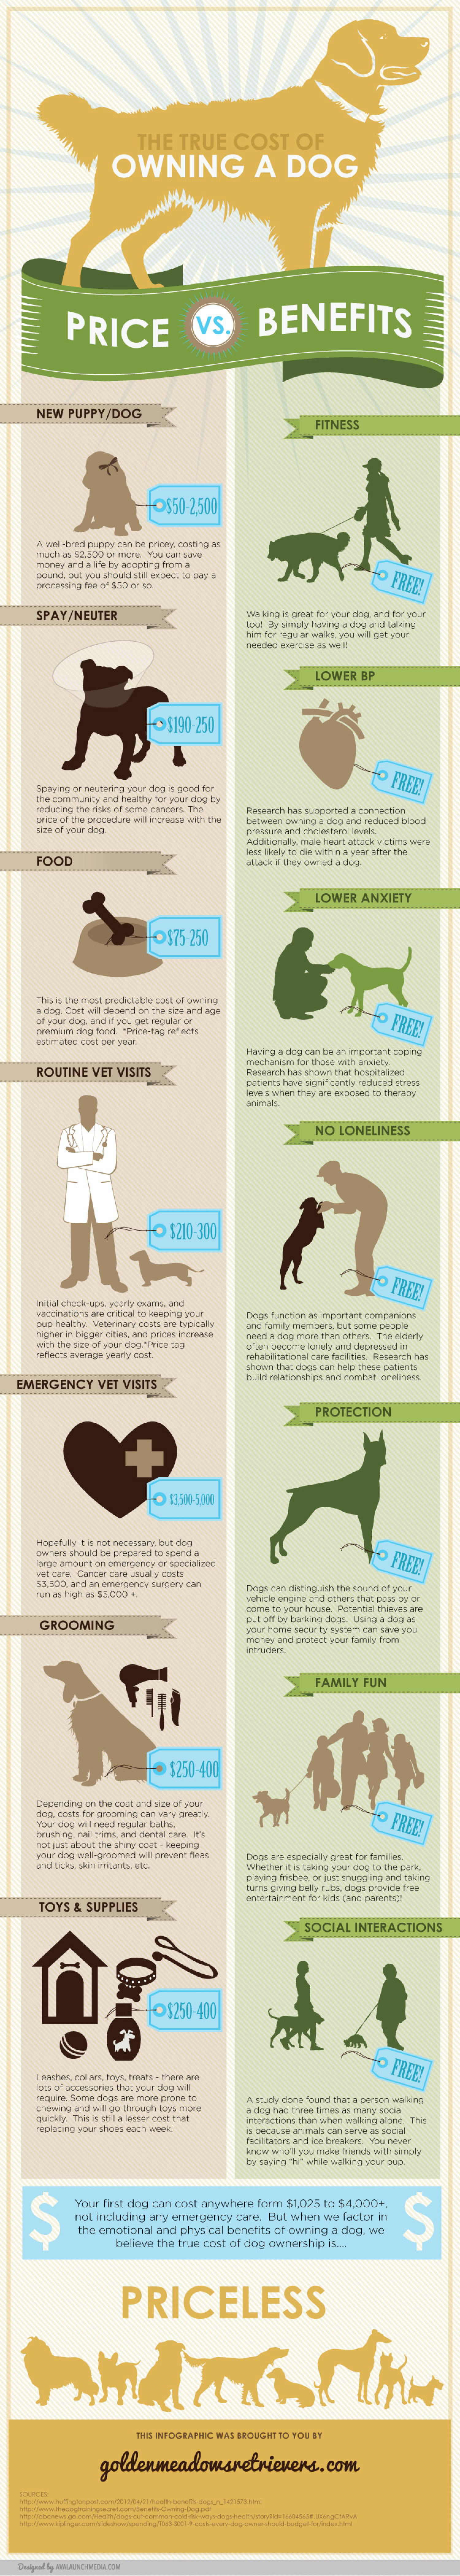 The True Cost of Owning A Dog Infographic